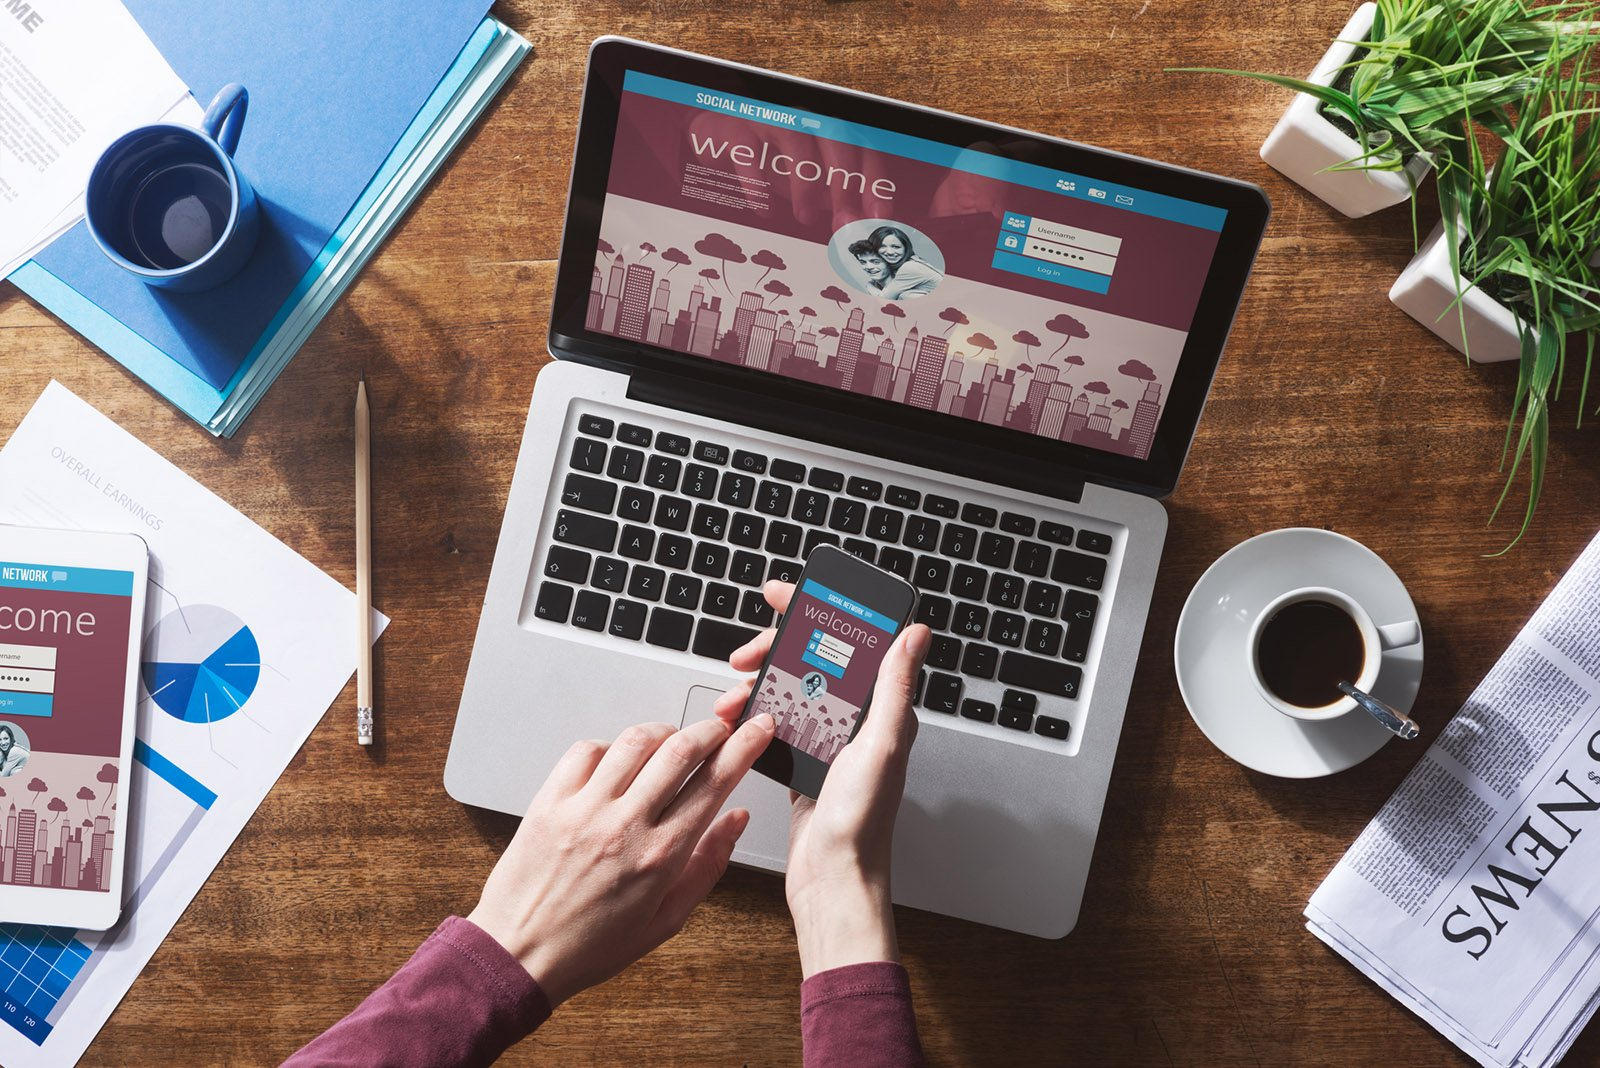 How to Choose Effective Images for Your Ecommerce Website Source depositphotos